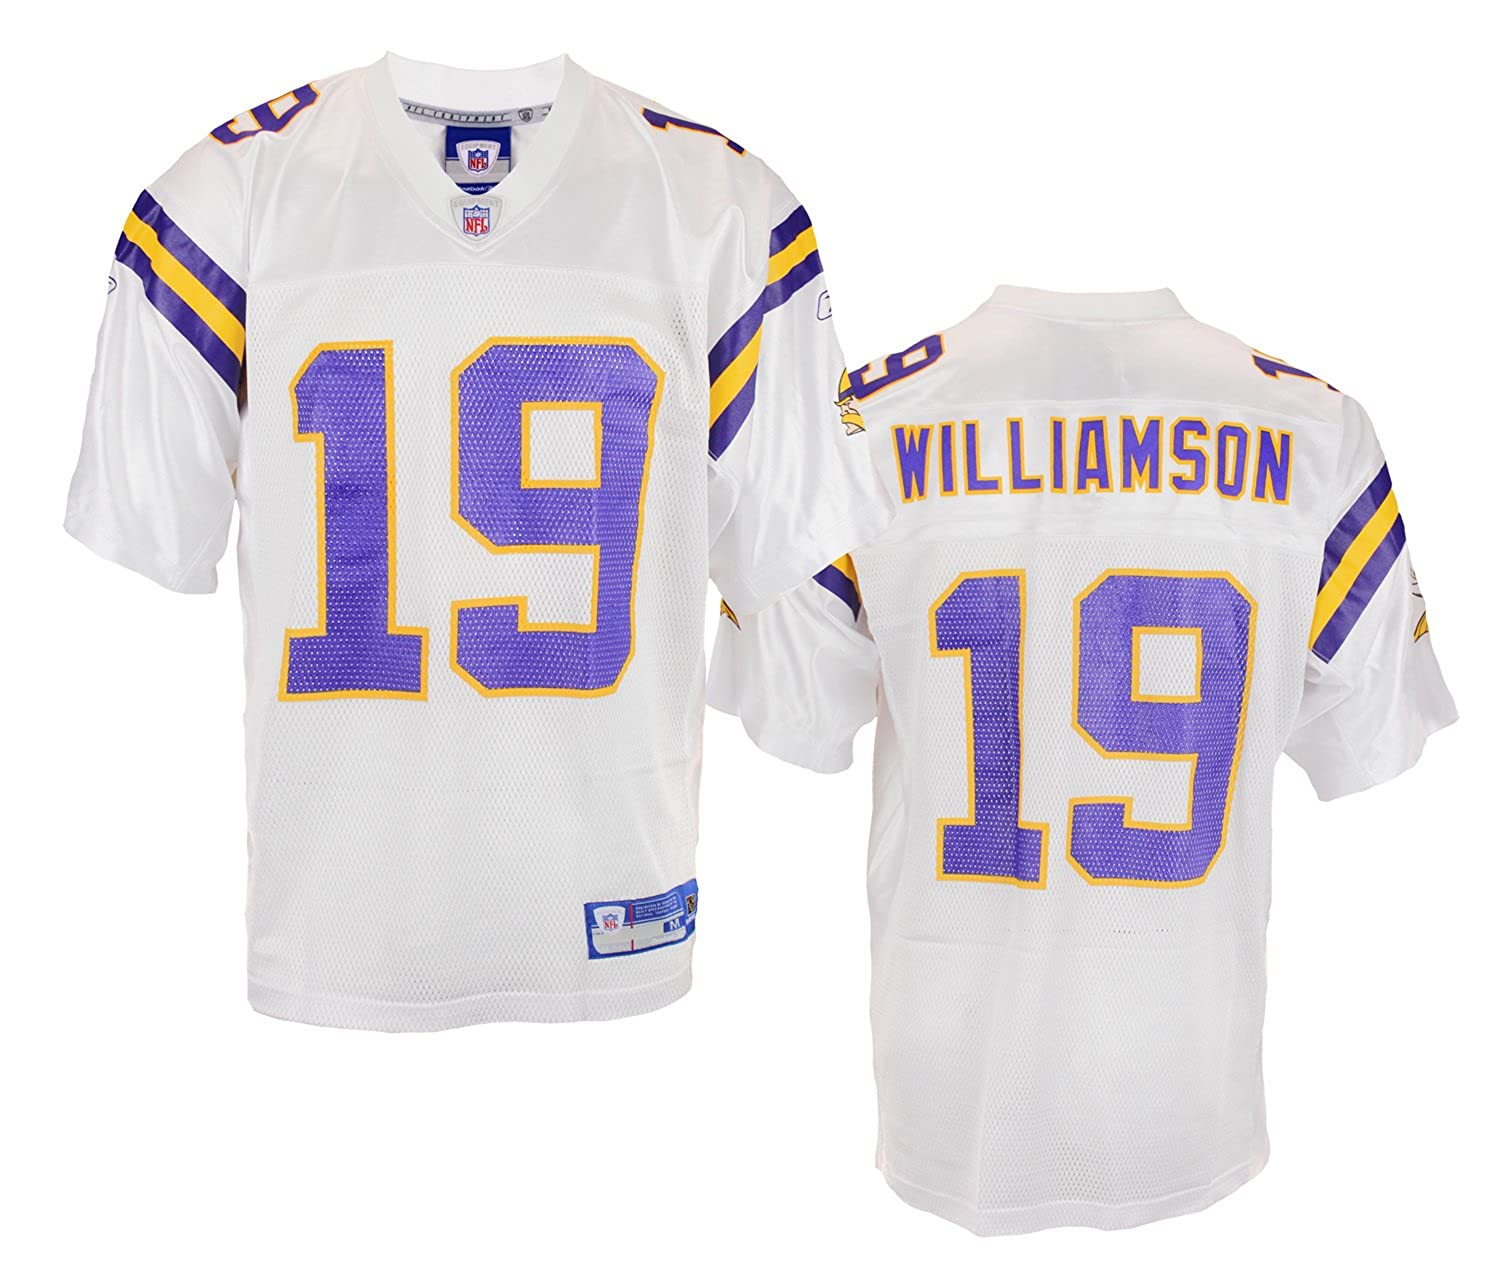 ... Darren Sharper 42 Jersey Amazon.com Minnesota Vikings Mens NFL Replica  Football Jersey Troy Williamson White Sports Fan Football ... b8fb29512